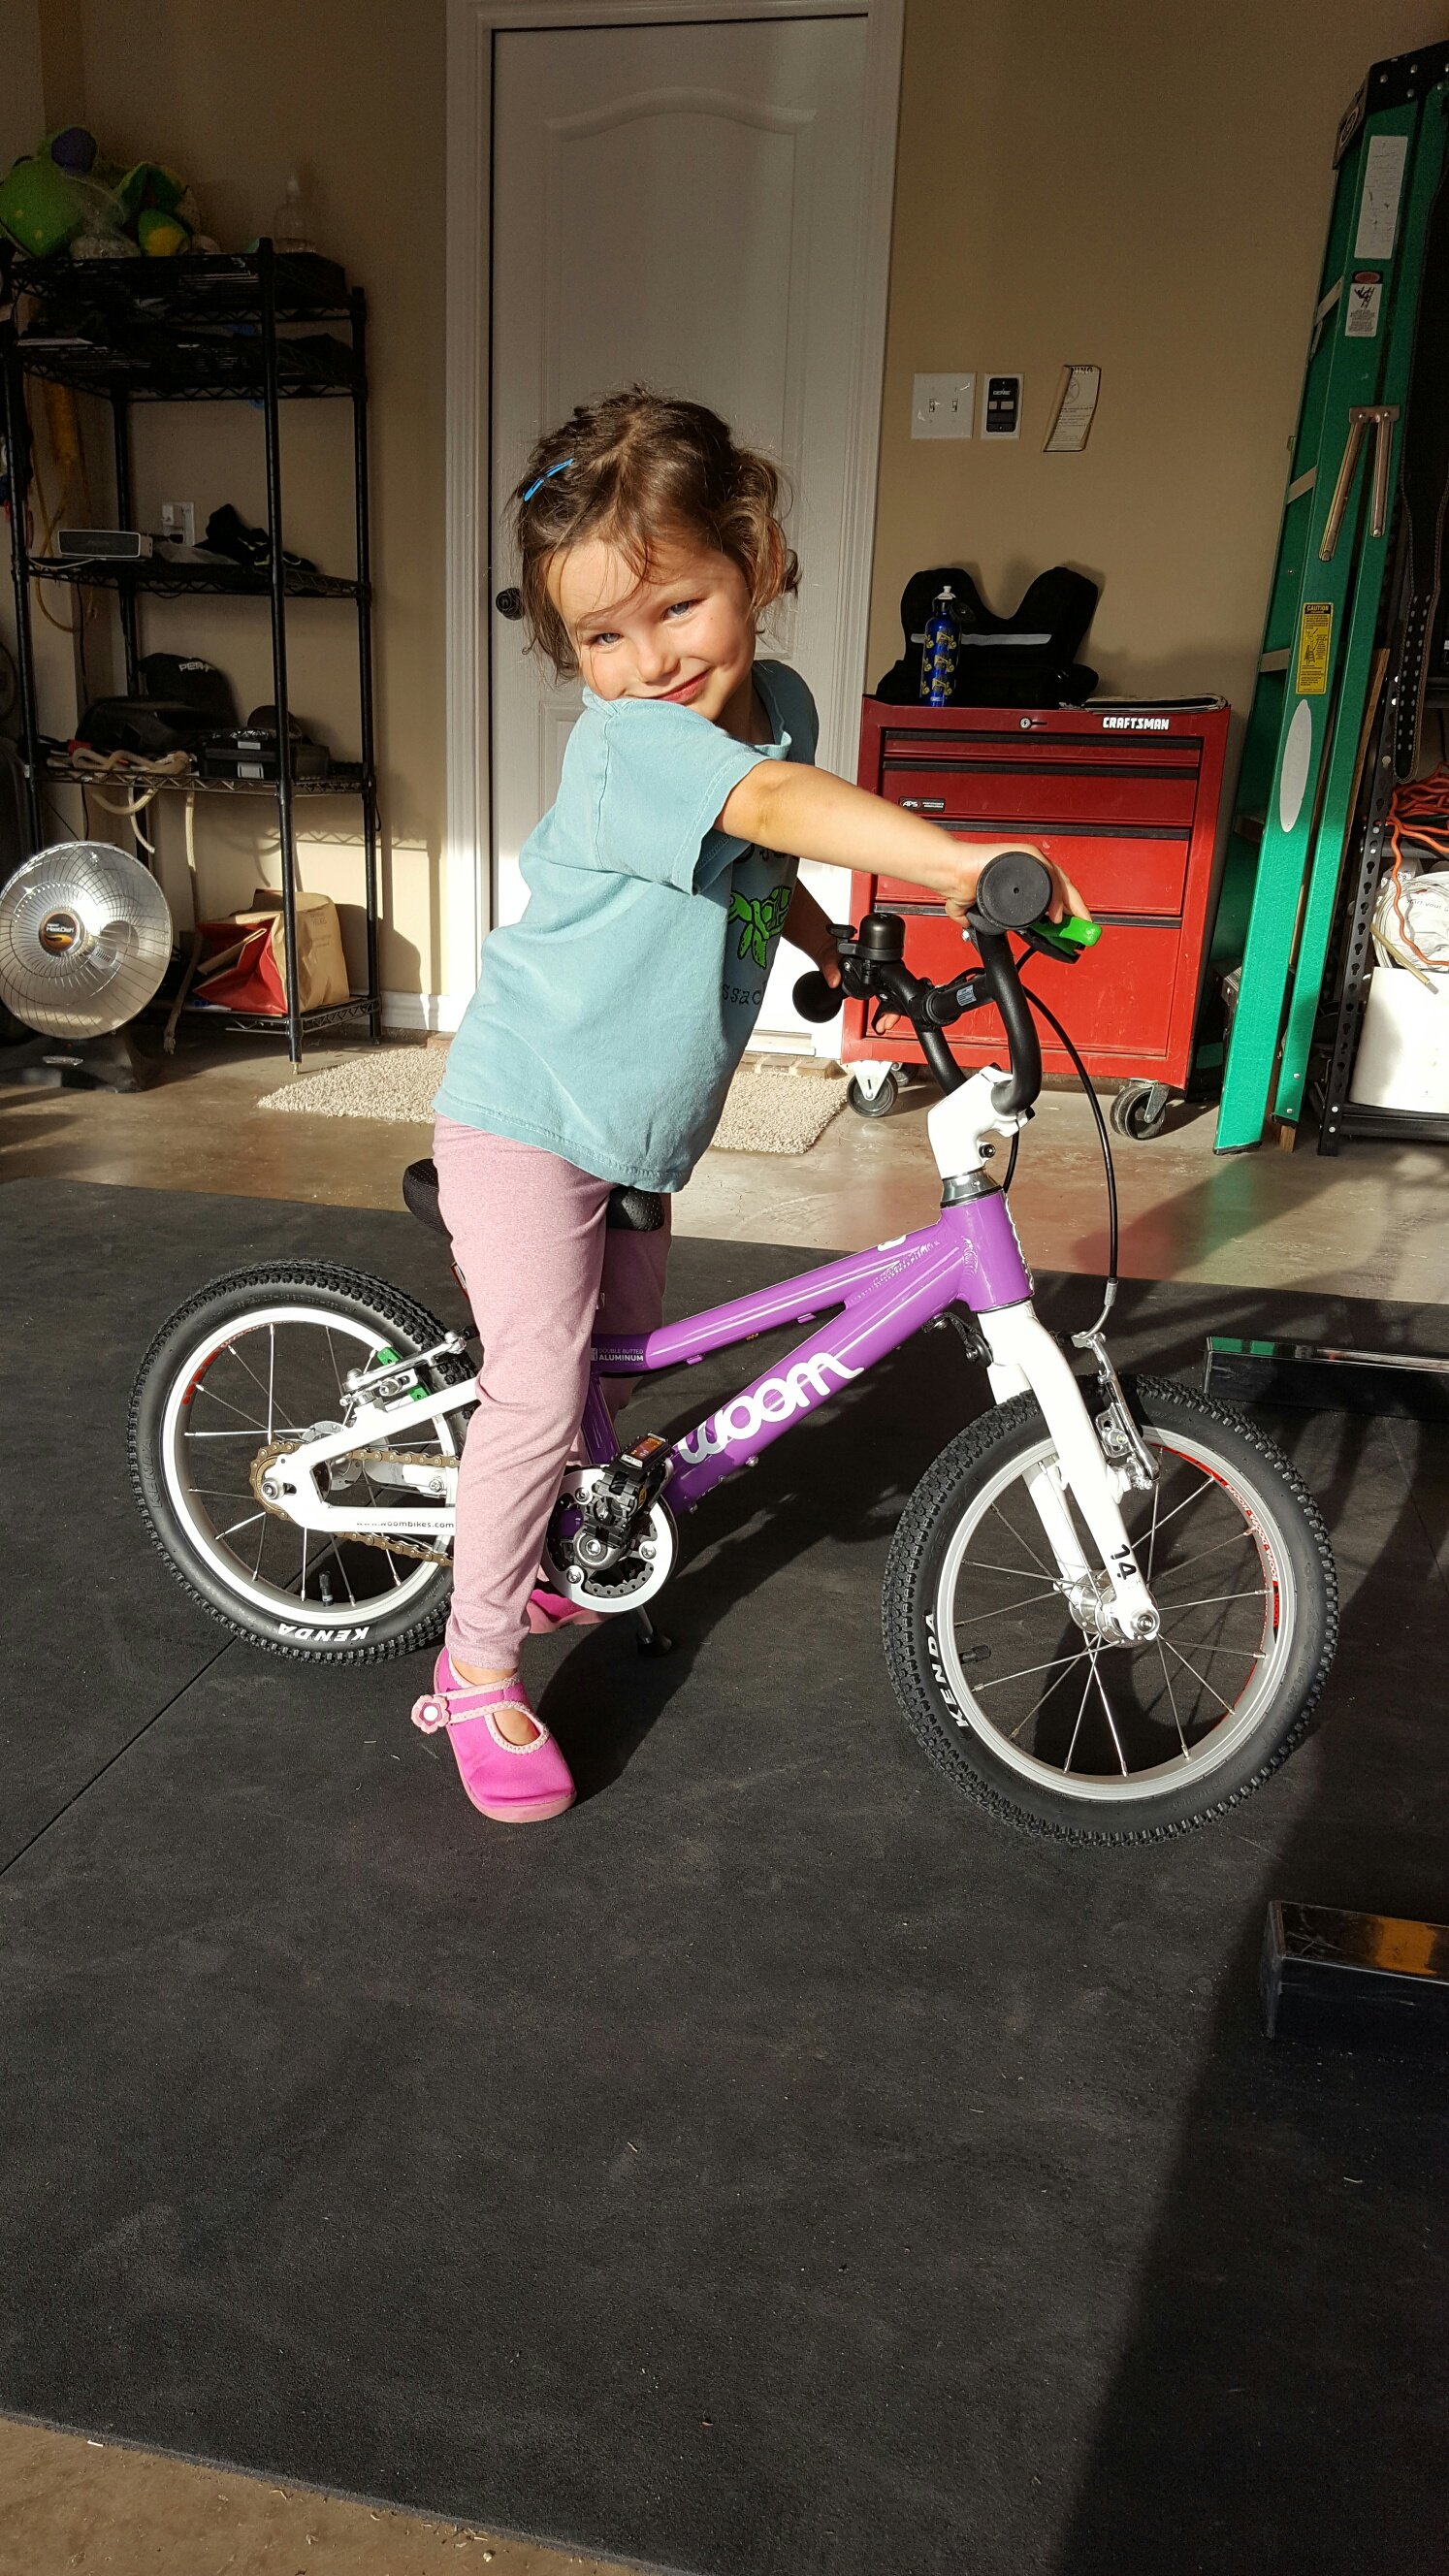 17ef07c3adb Riding Without Training Wheels: The WOOM 2 Transition - Going Dad